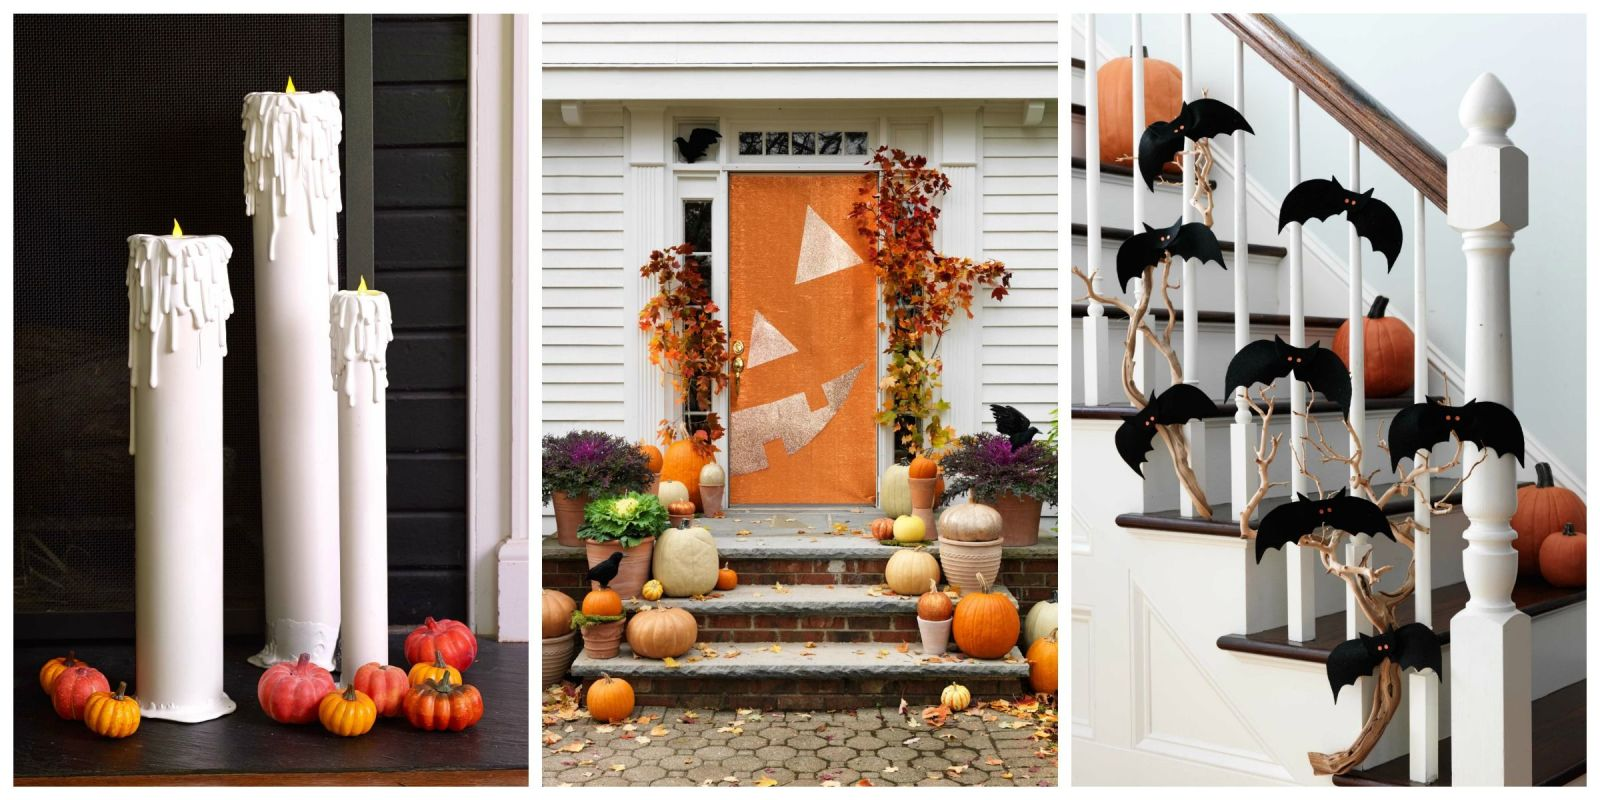 Easy homemade halloween decorations - 40 Easy Diy Halloween Decoration Ideas Homemade Halloween Decor Projects